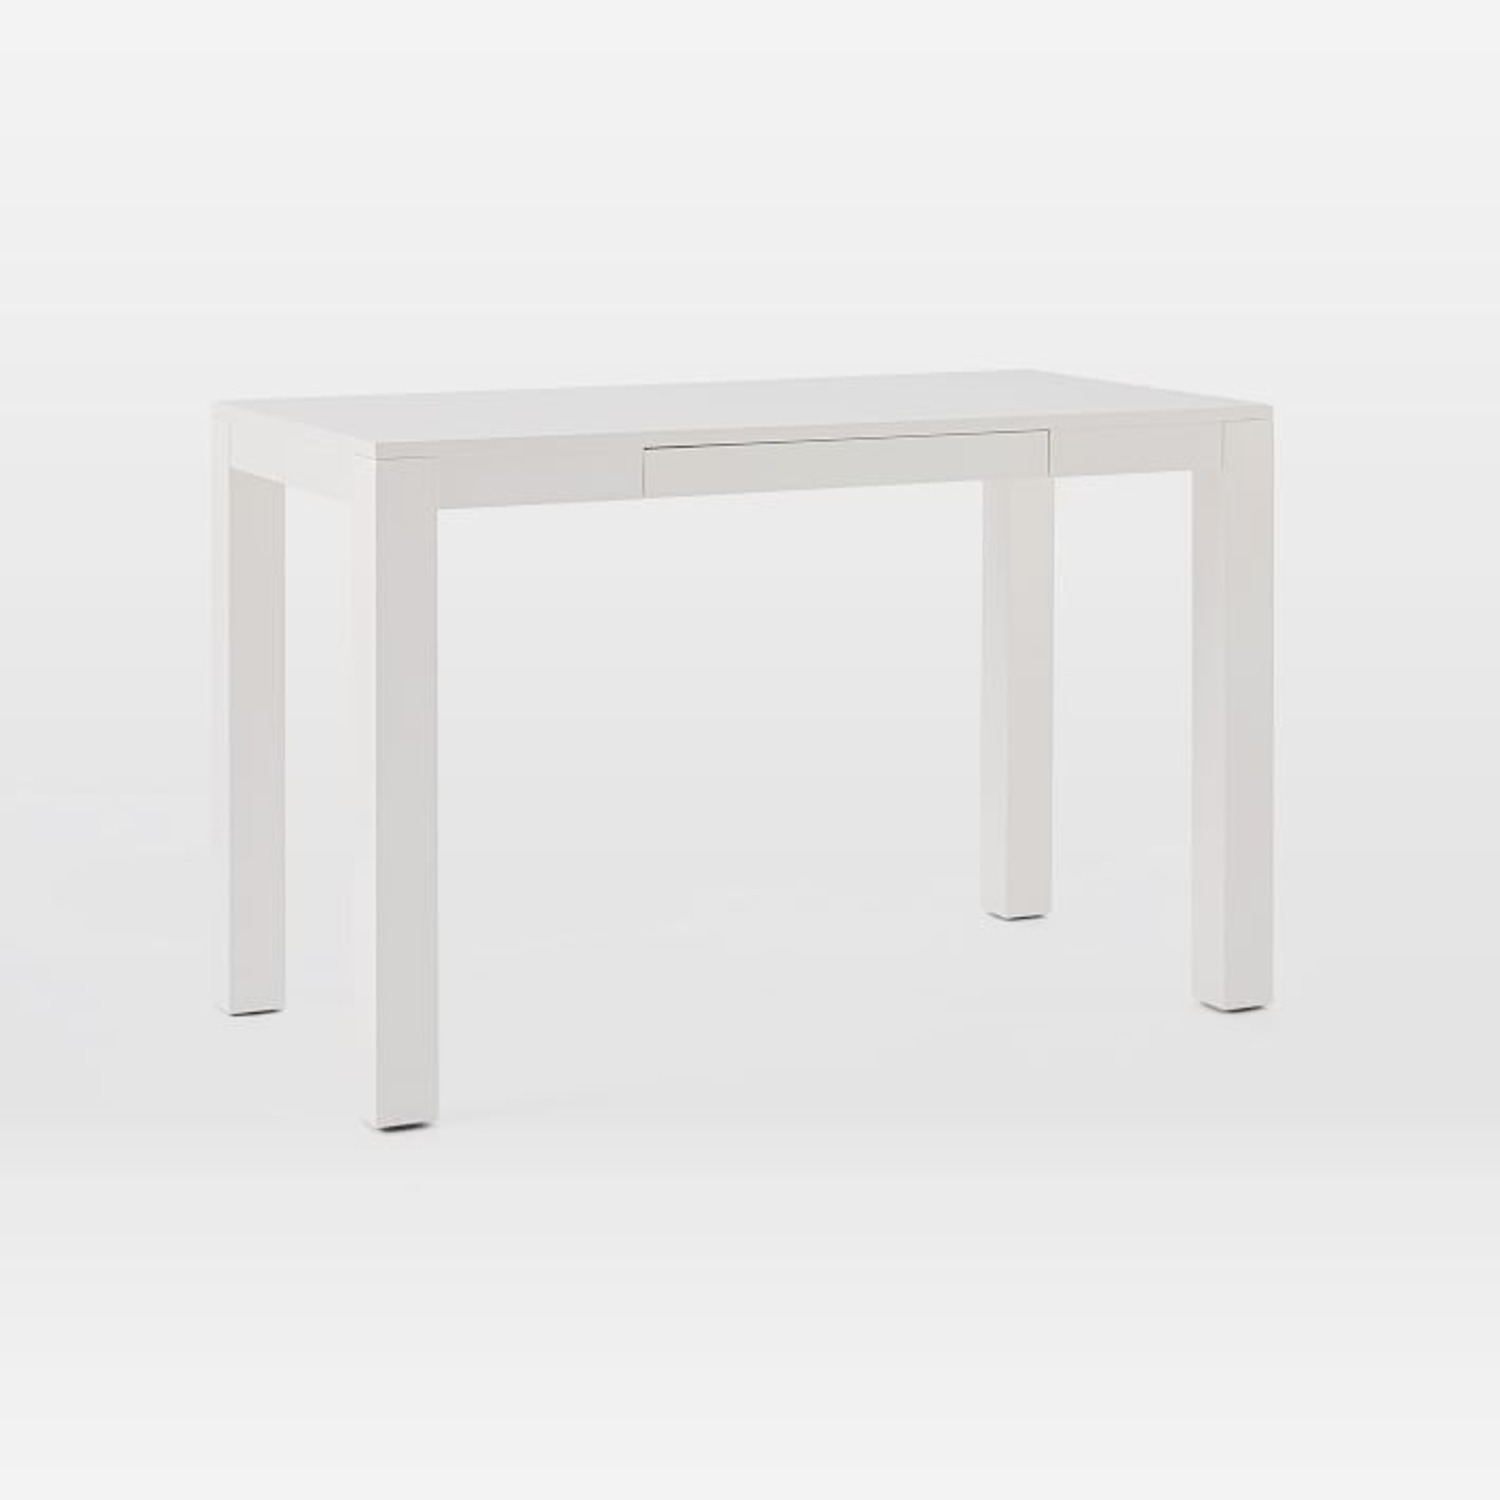 West Elm Parsons Desk With Drawers, White - image-1